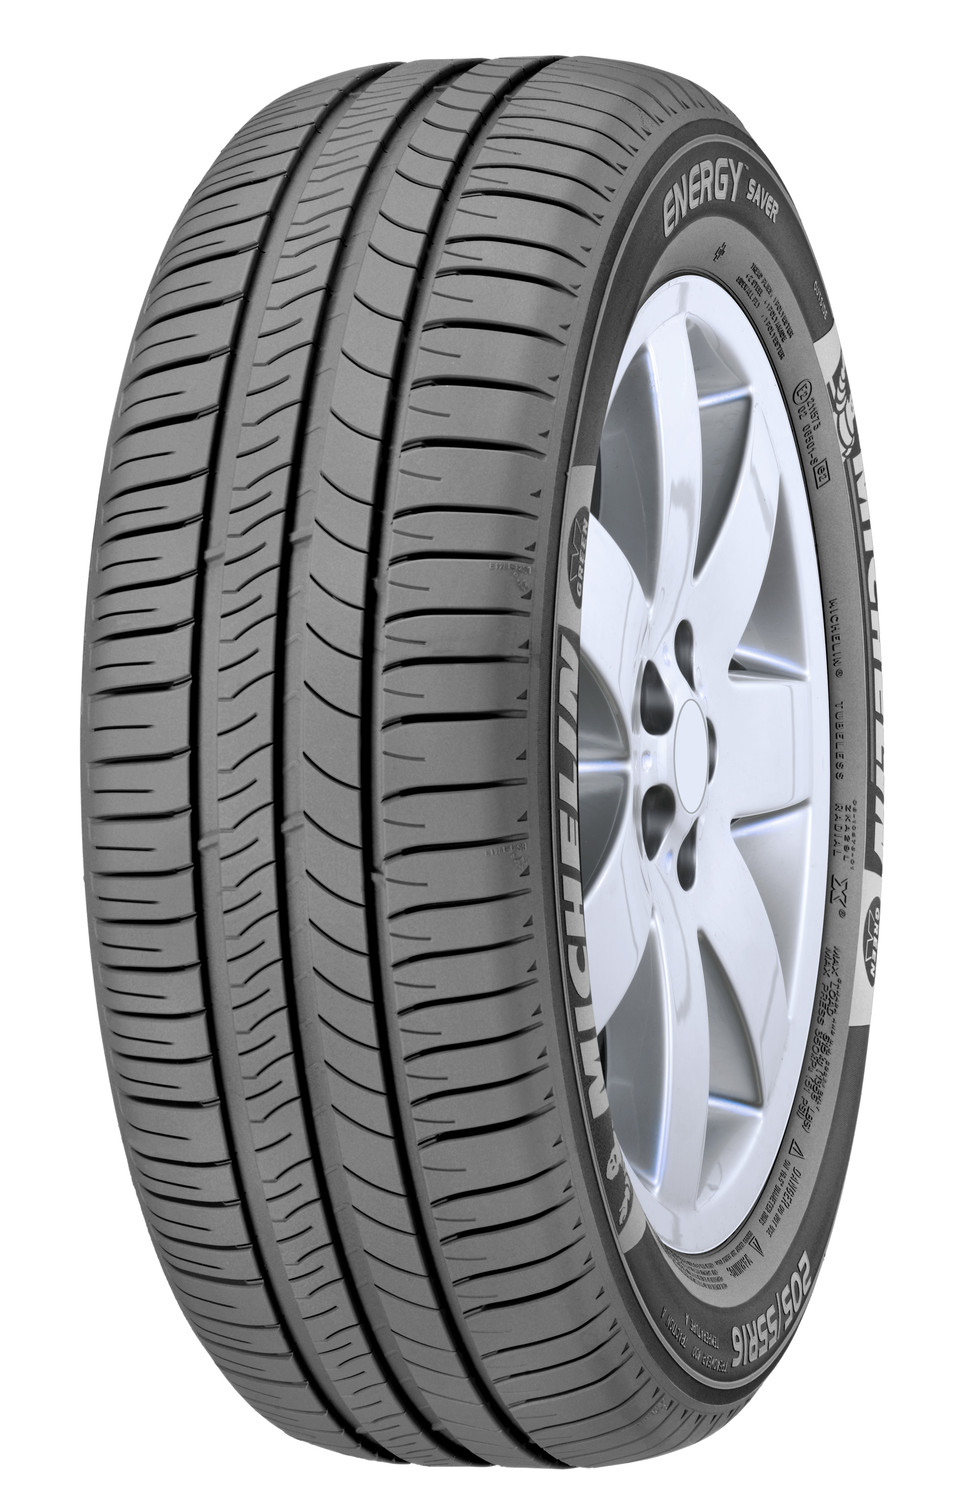 Michelin ENERGY SAVER+ GRNX 195/65 R15 91H TL